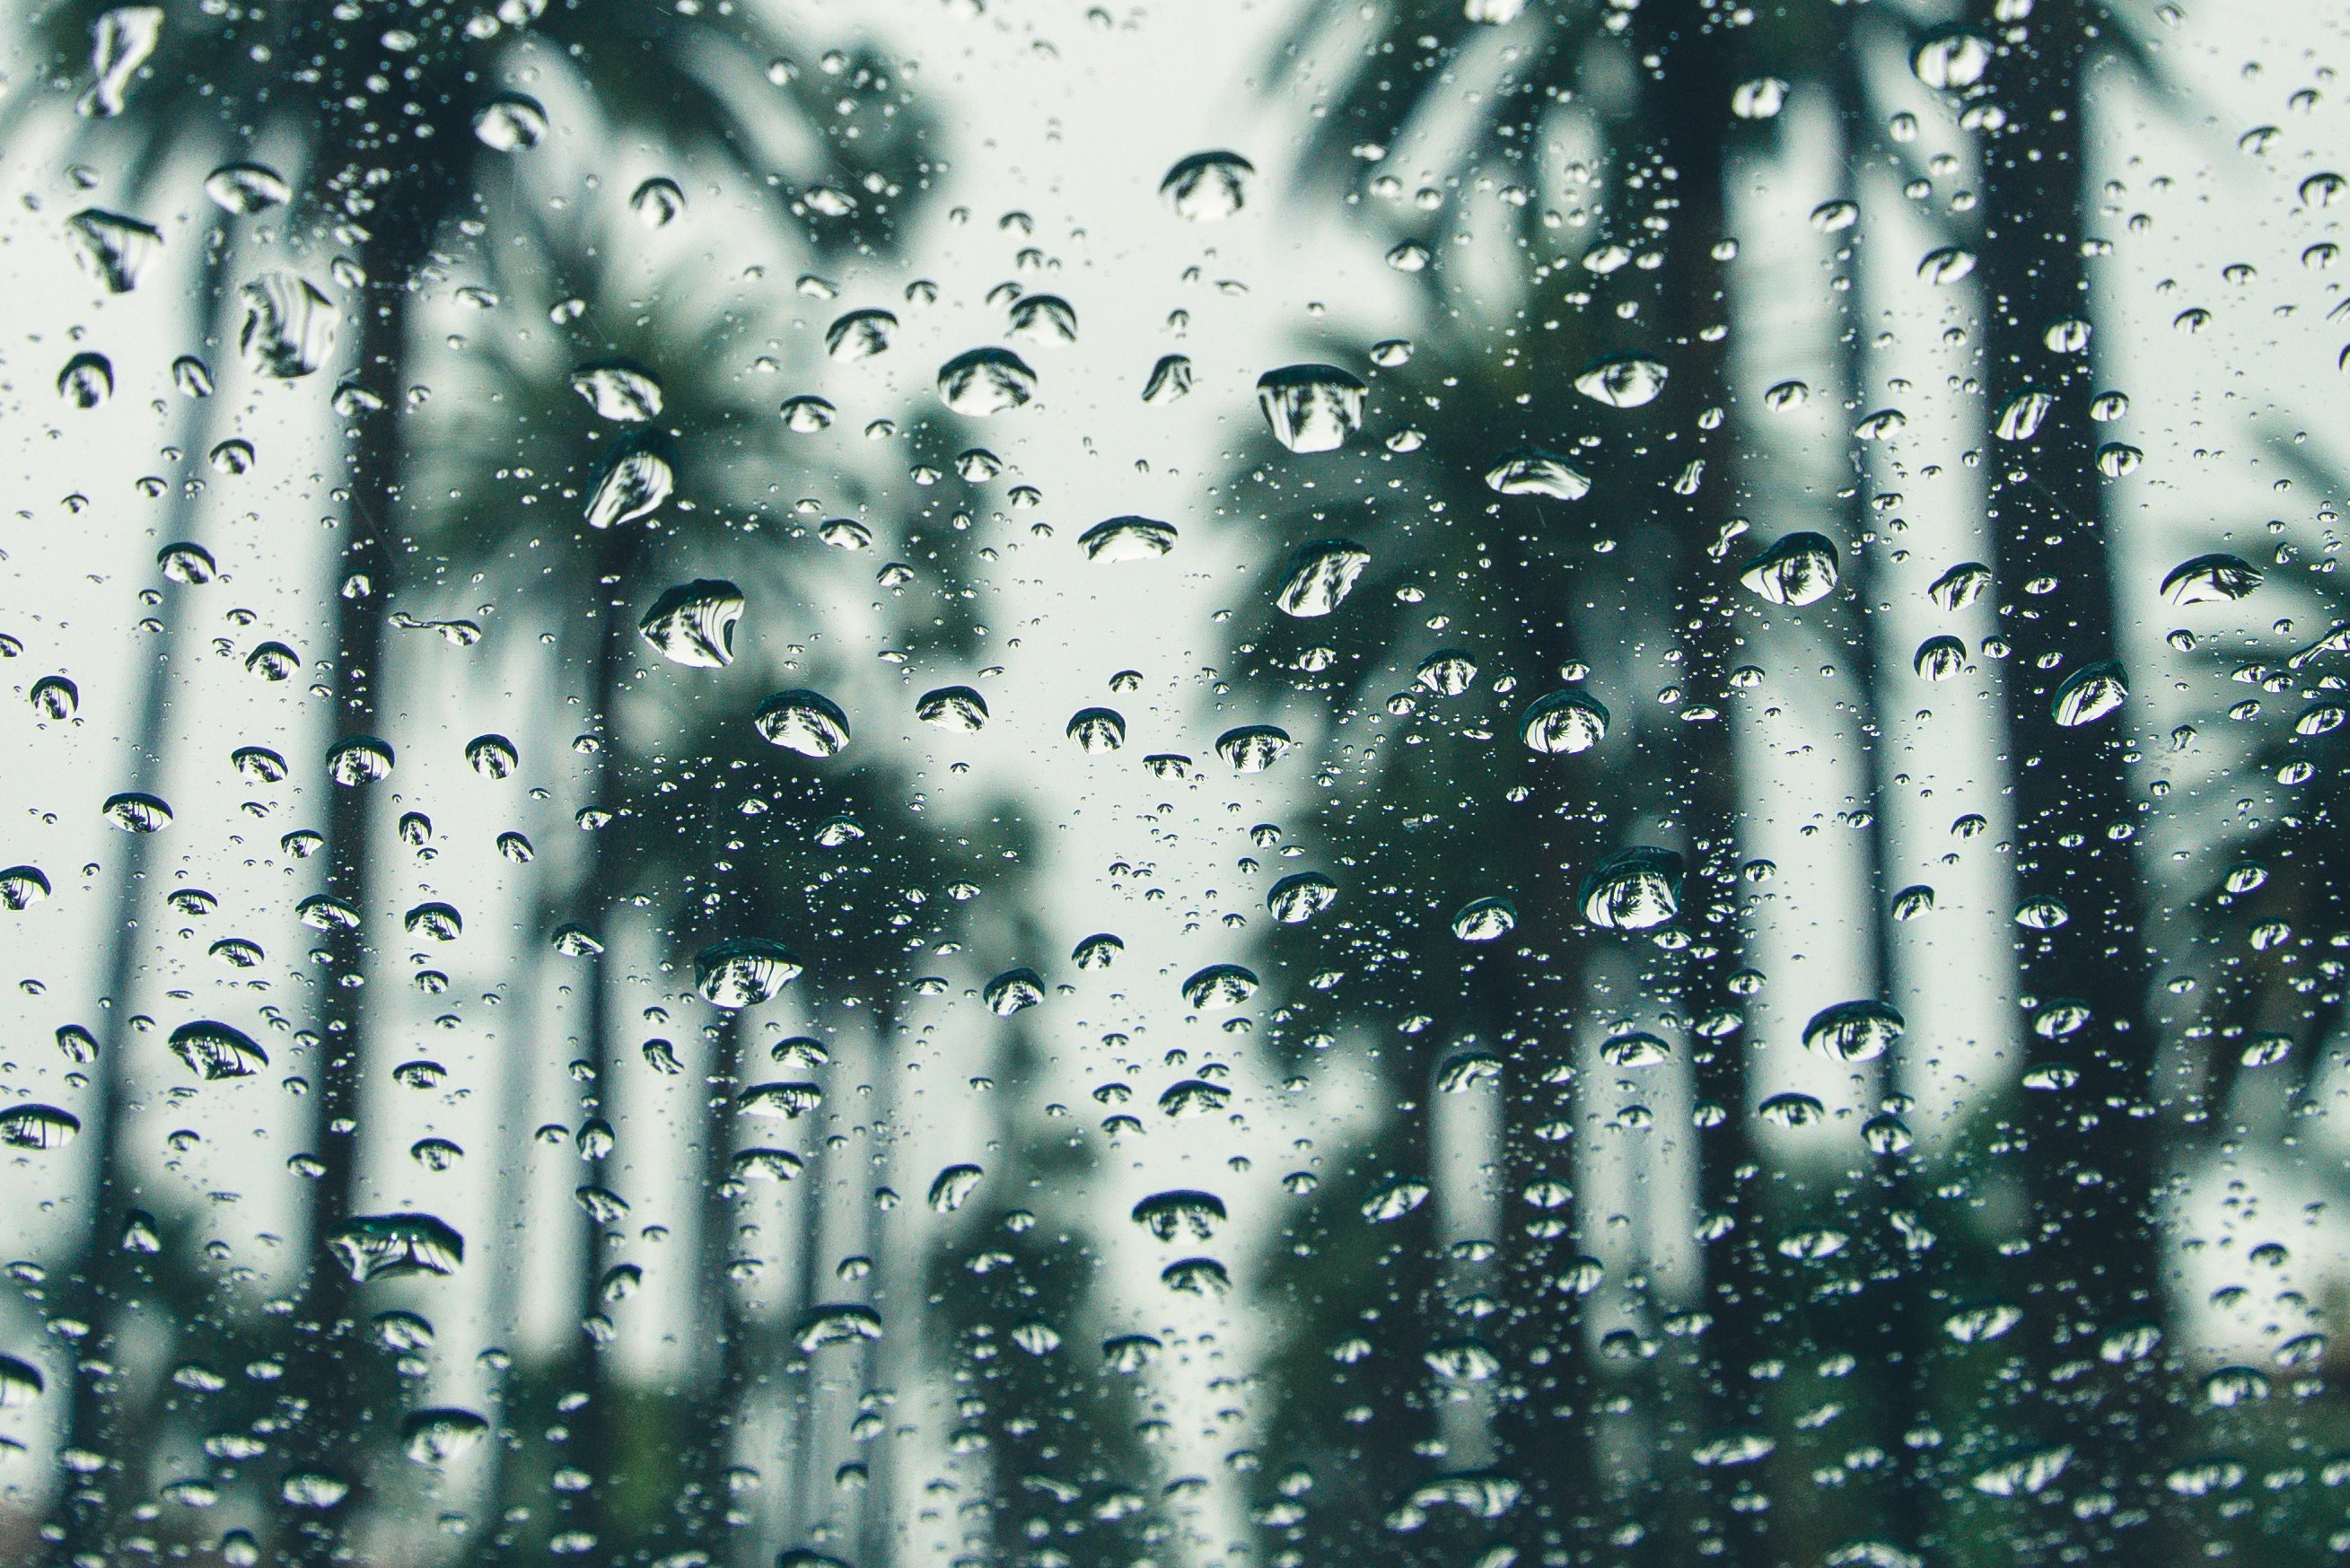 Representative photo of rainfall.